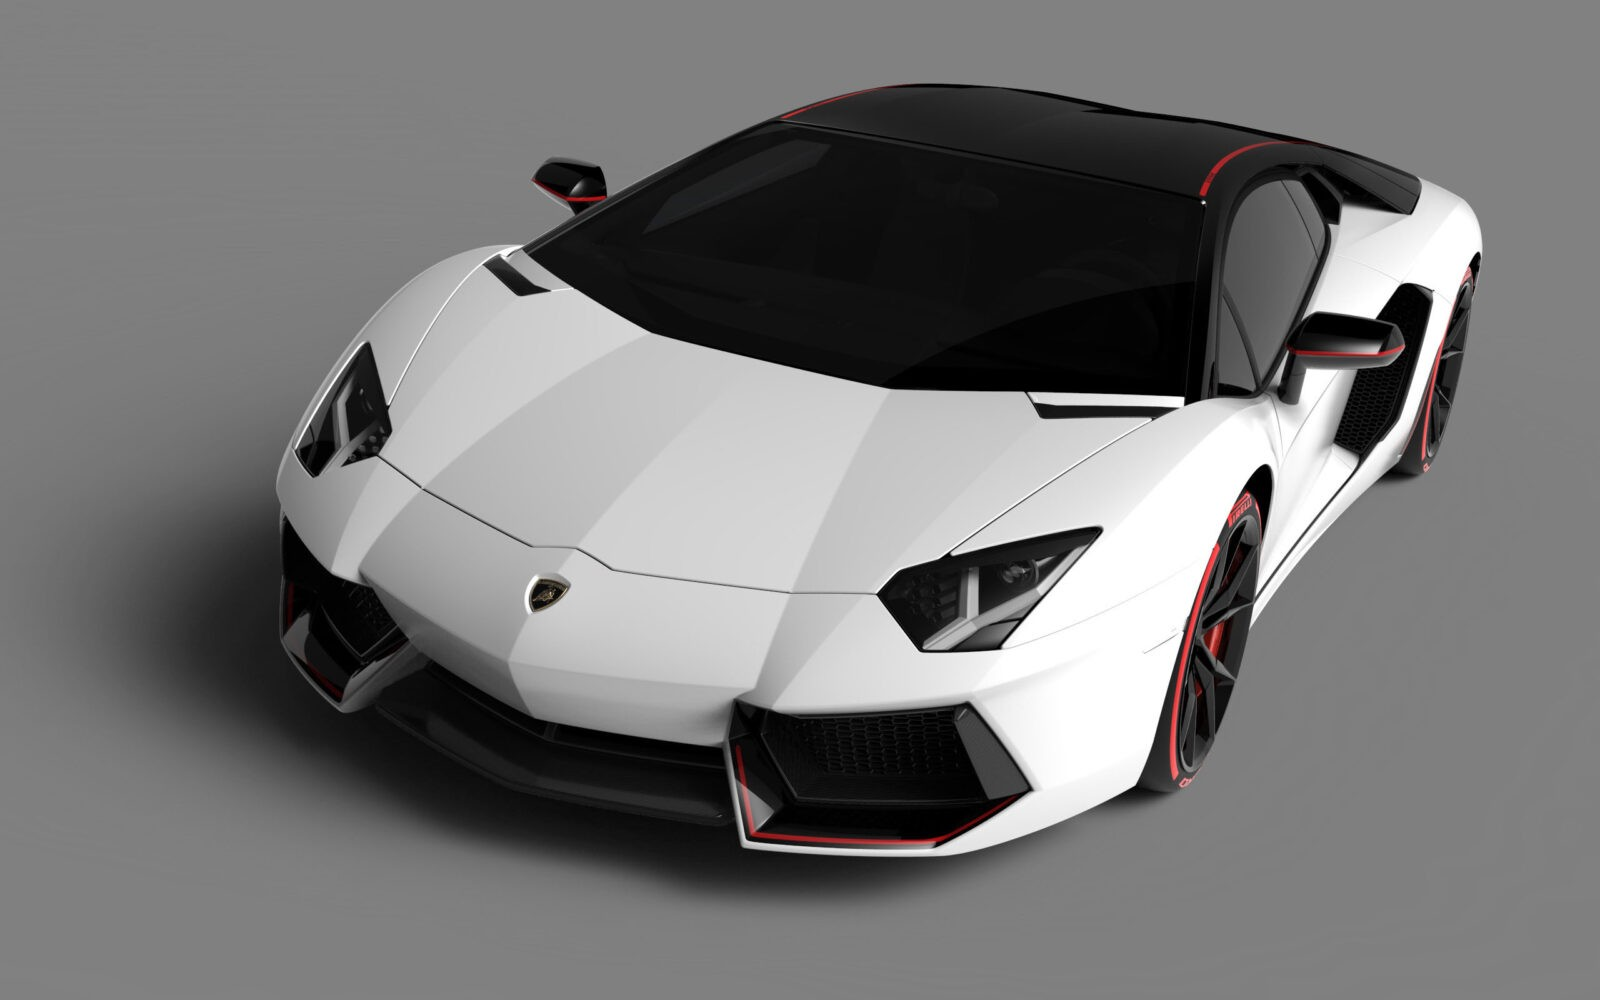 lamborghini aventador wallpaper hd black. white lamborghini aventador free picture wallpaper hd black